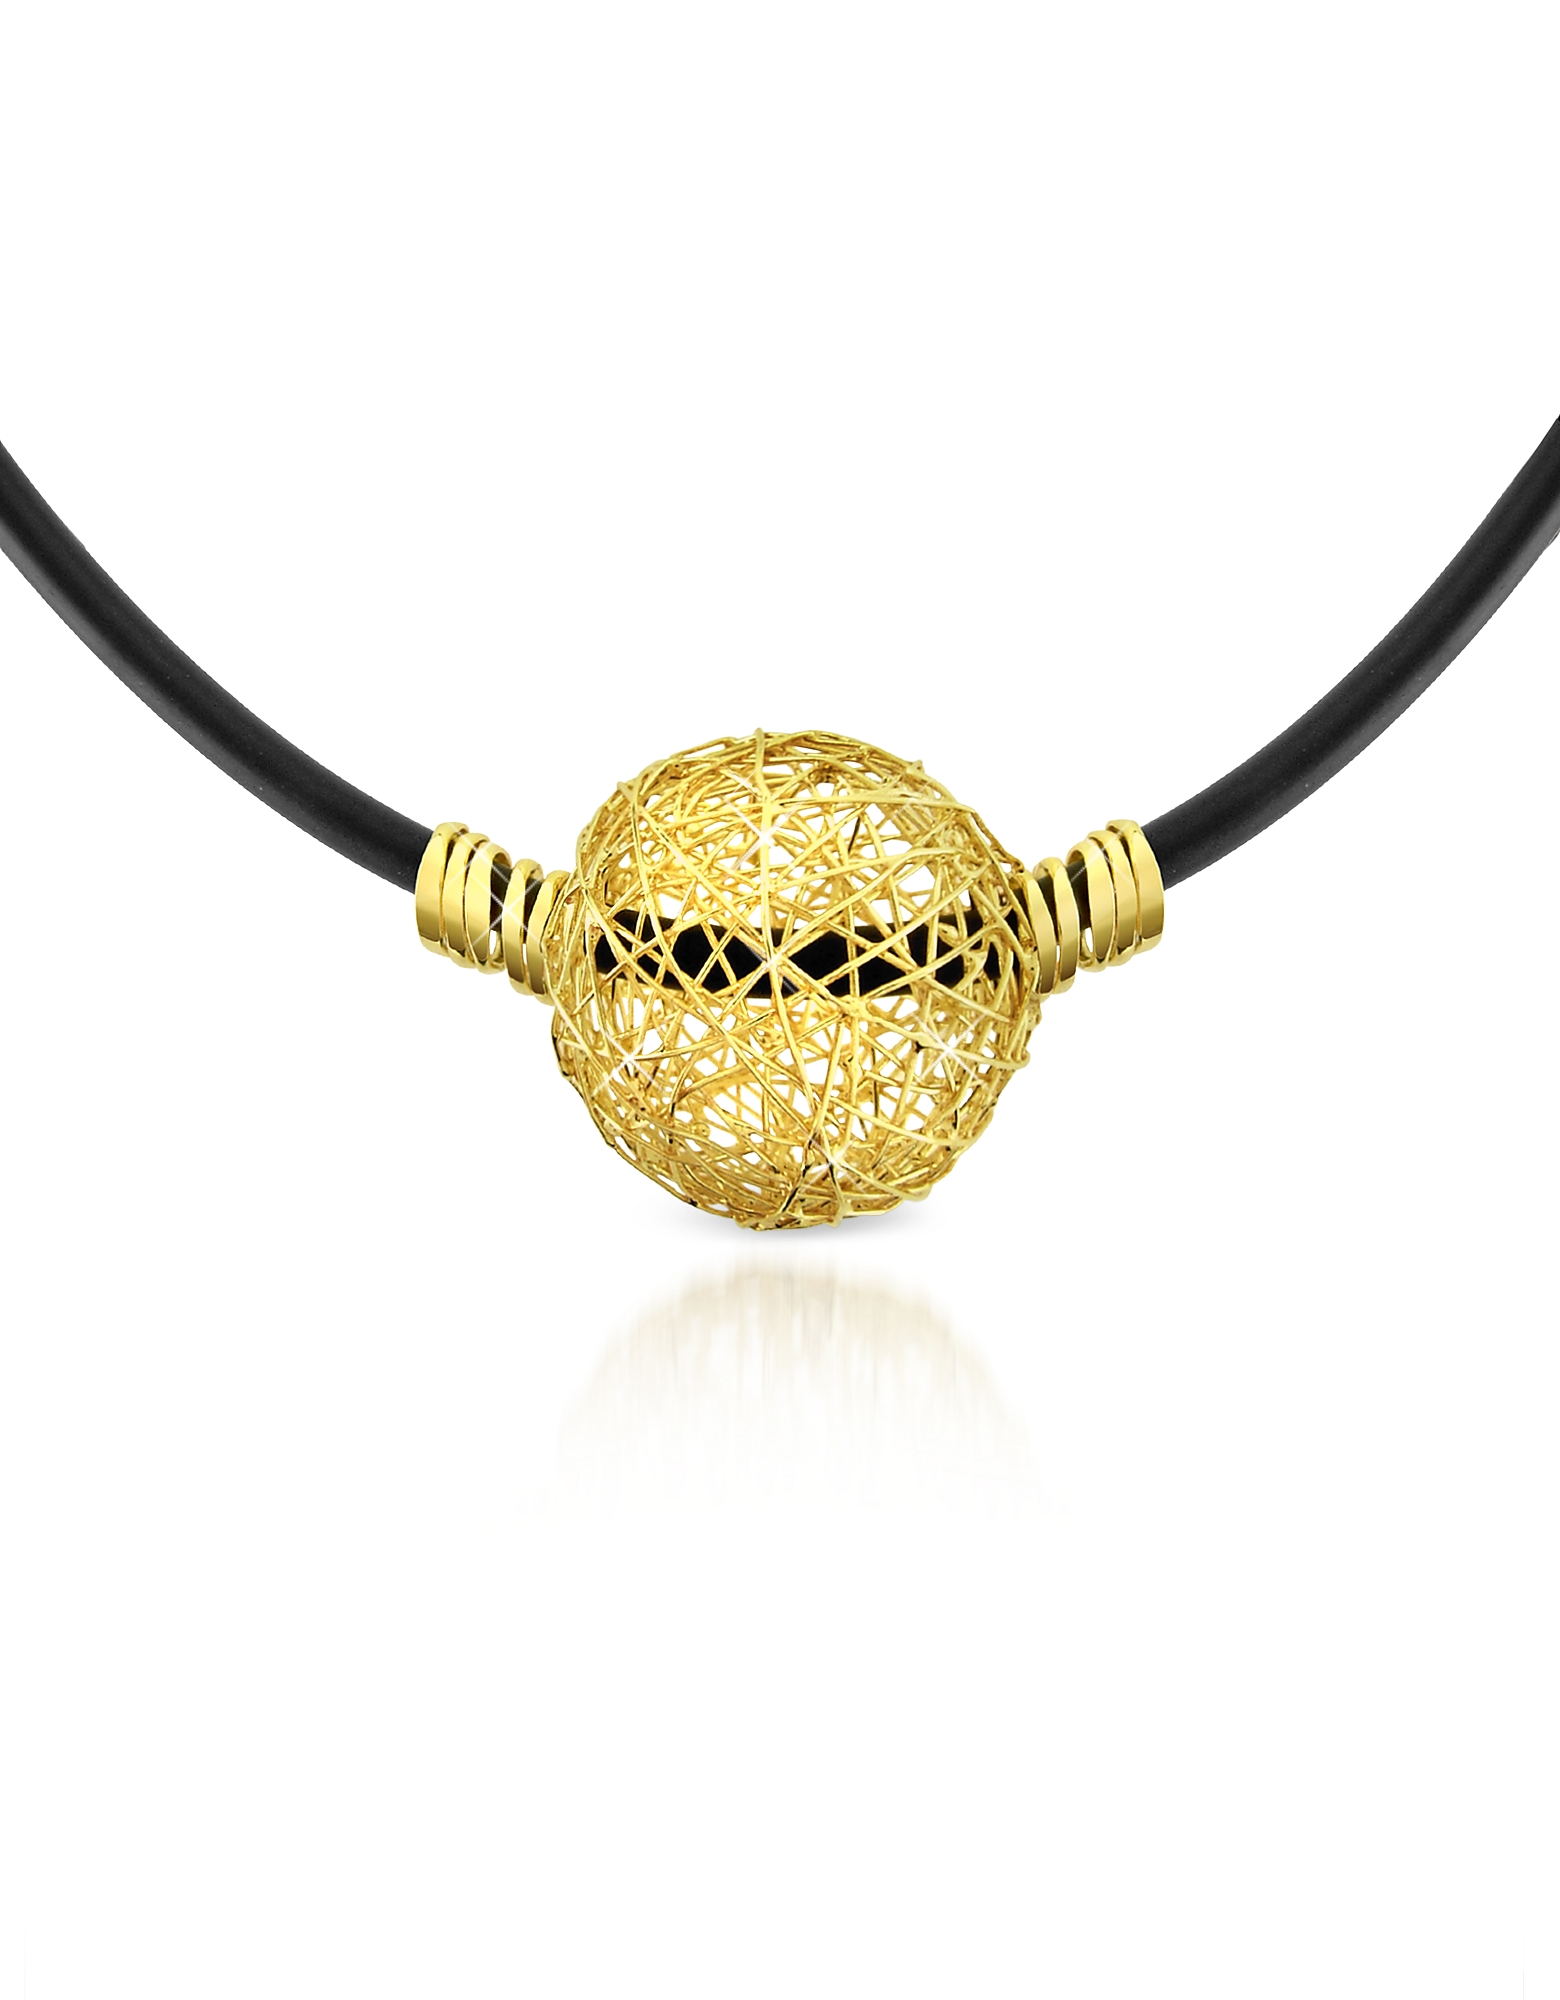 Orlando Orlandini Designer Necklaces, Arianna - 18K Yellow Gold Wire Pendant Rubber Necklace